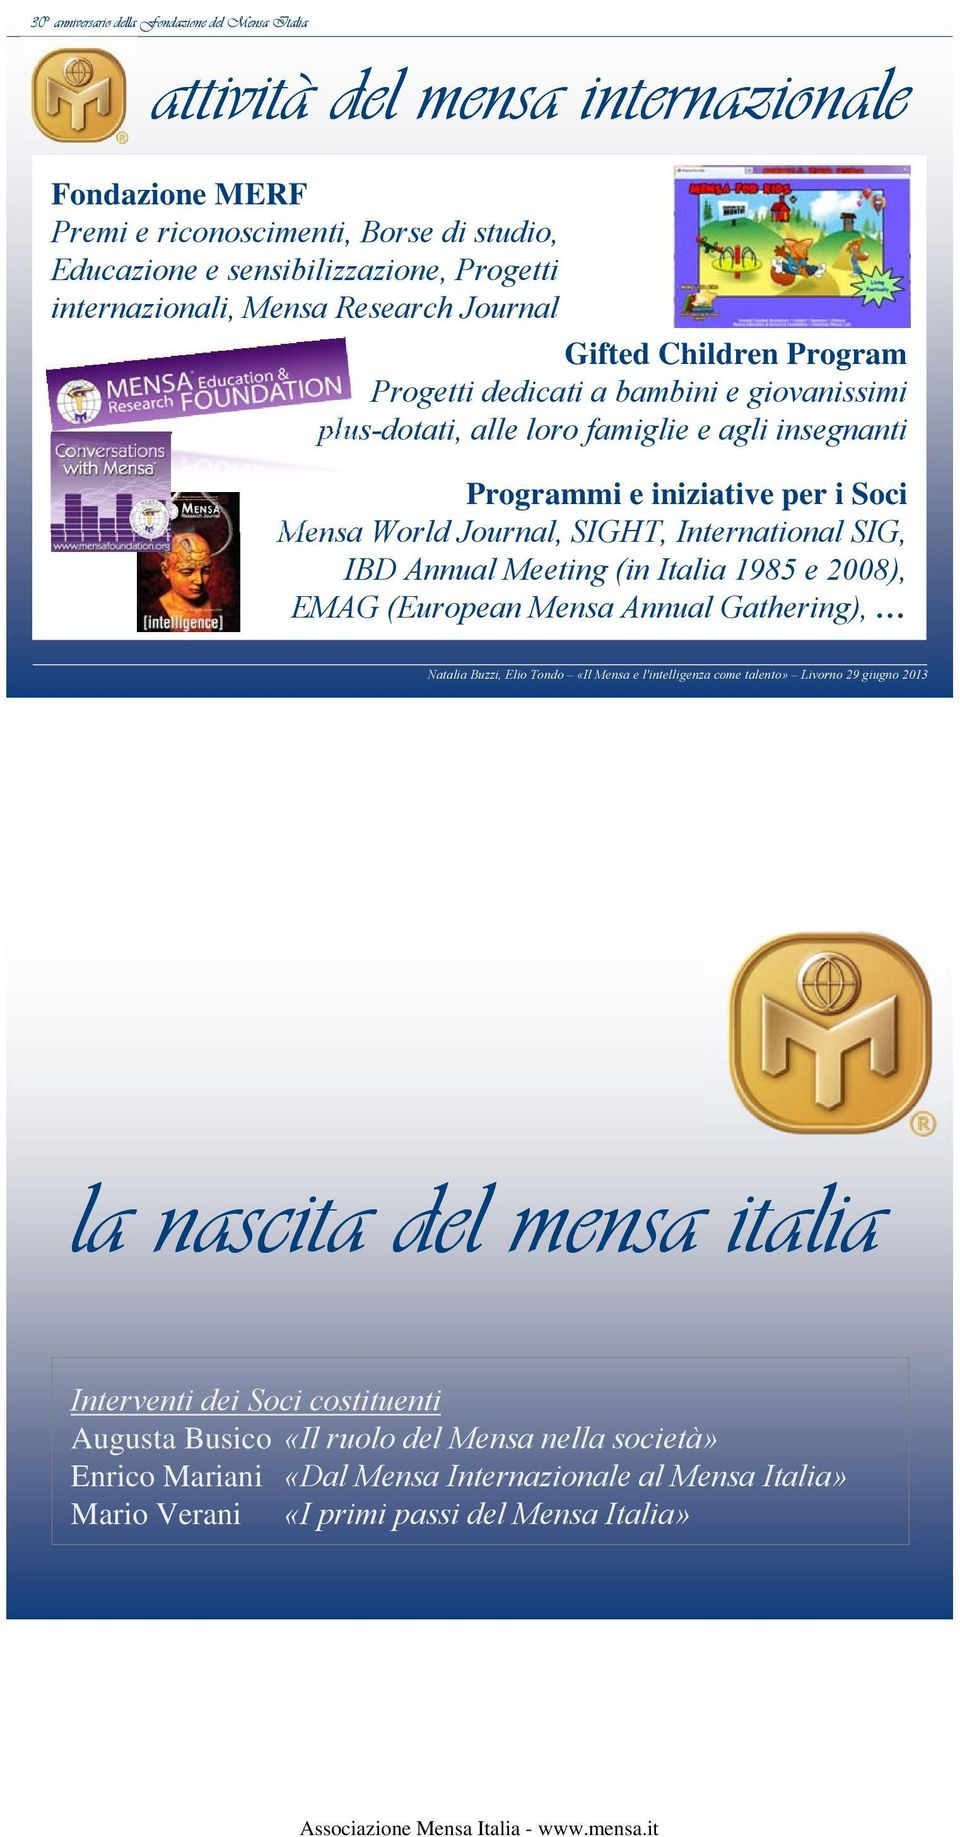 World Journal, SIGHT, International SIG, IBD Annual Meeting (in Italia 1985 e 2008), EMAG (European Mensa Annual Gathering), la nascita del mensa italia Interventi